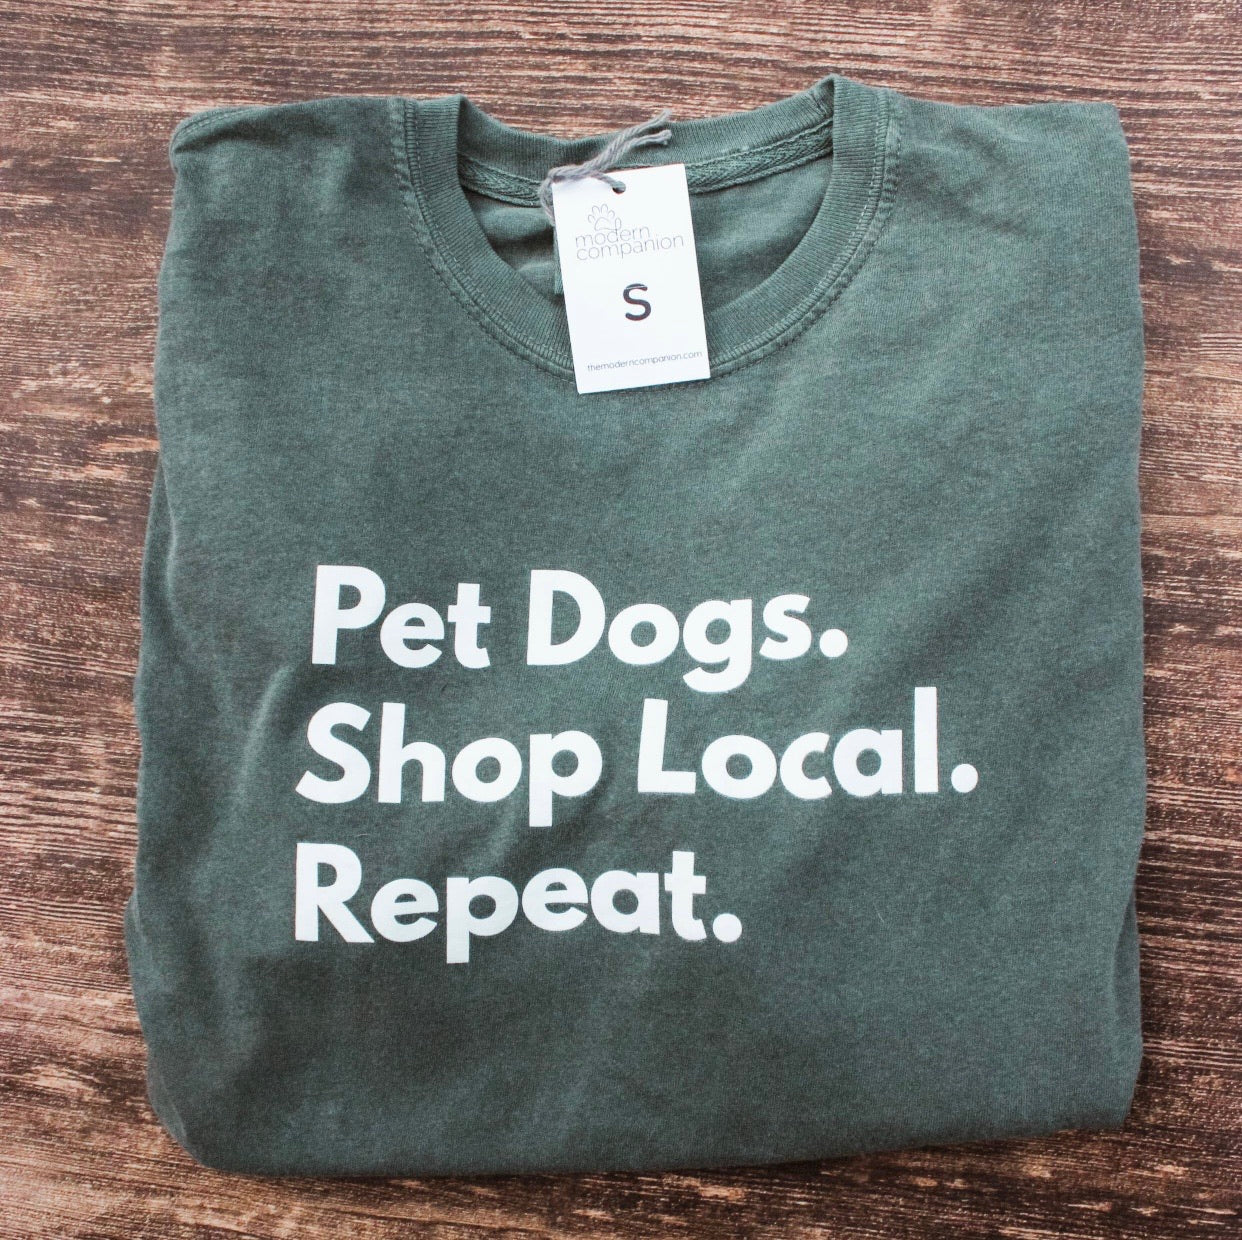 Pet Dogs. Shop Local. Repeat.